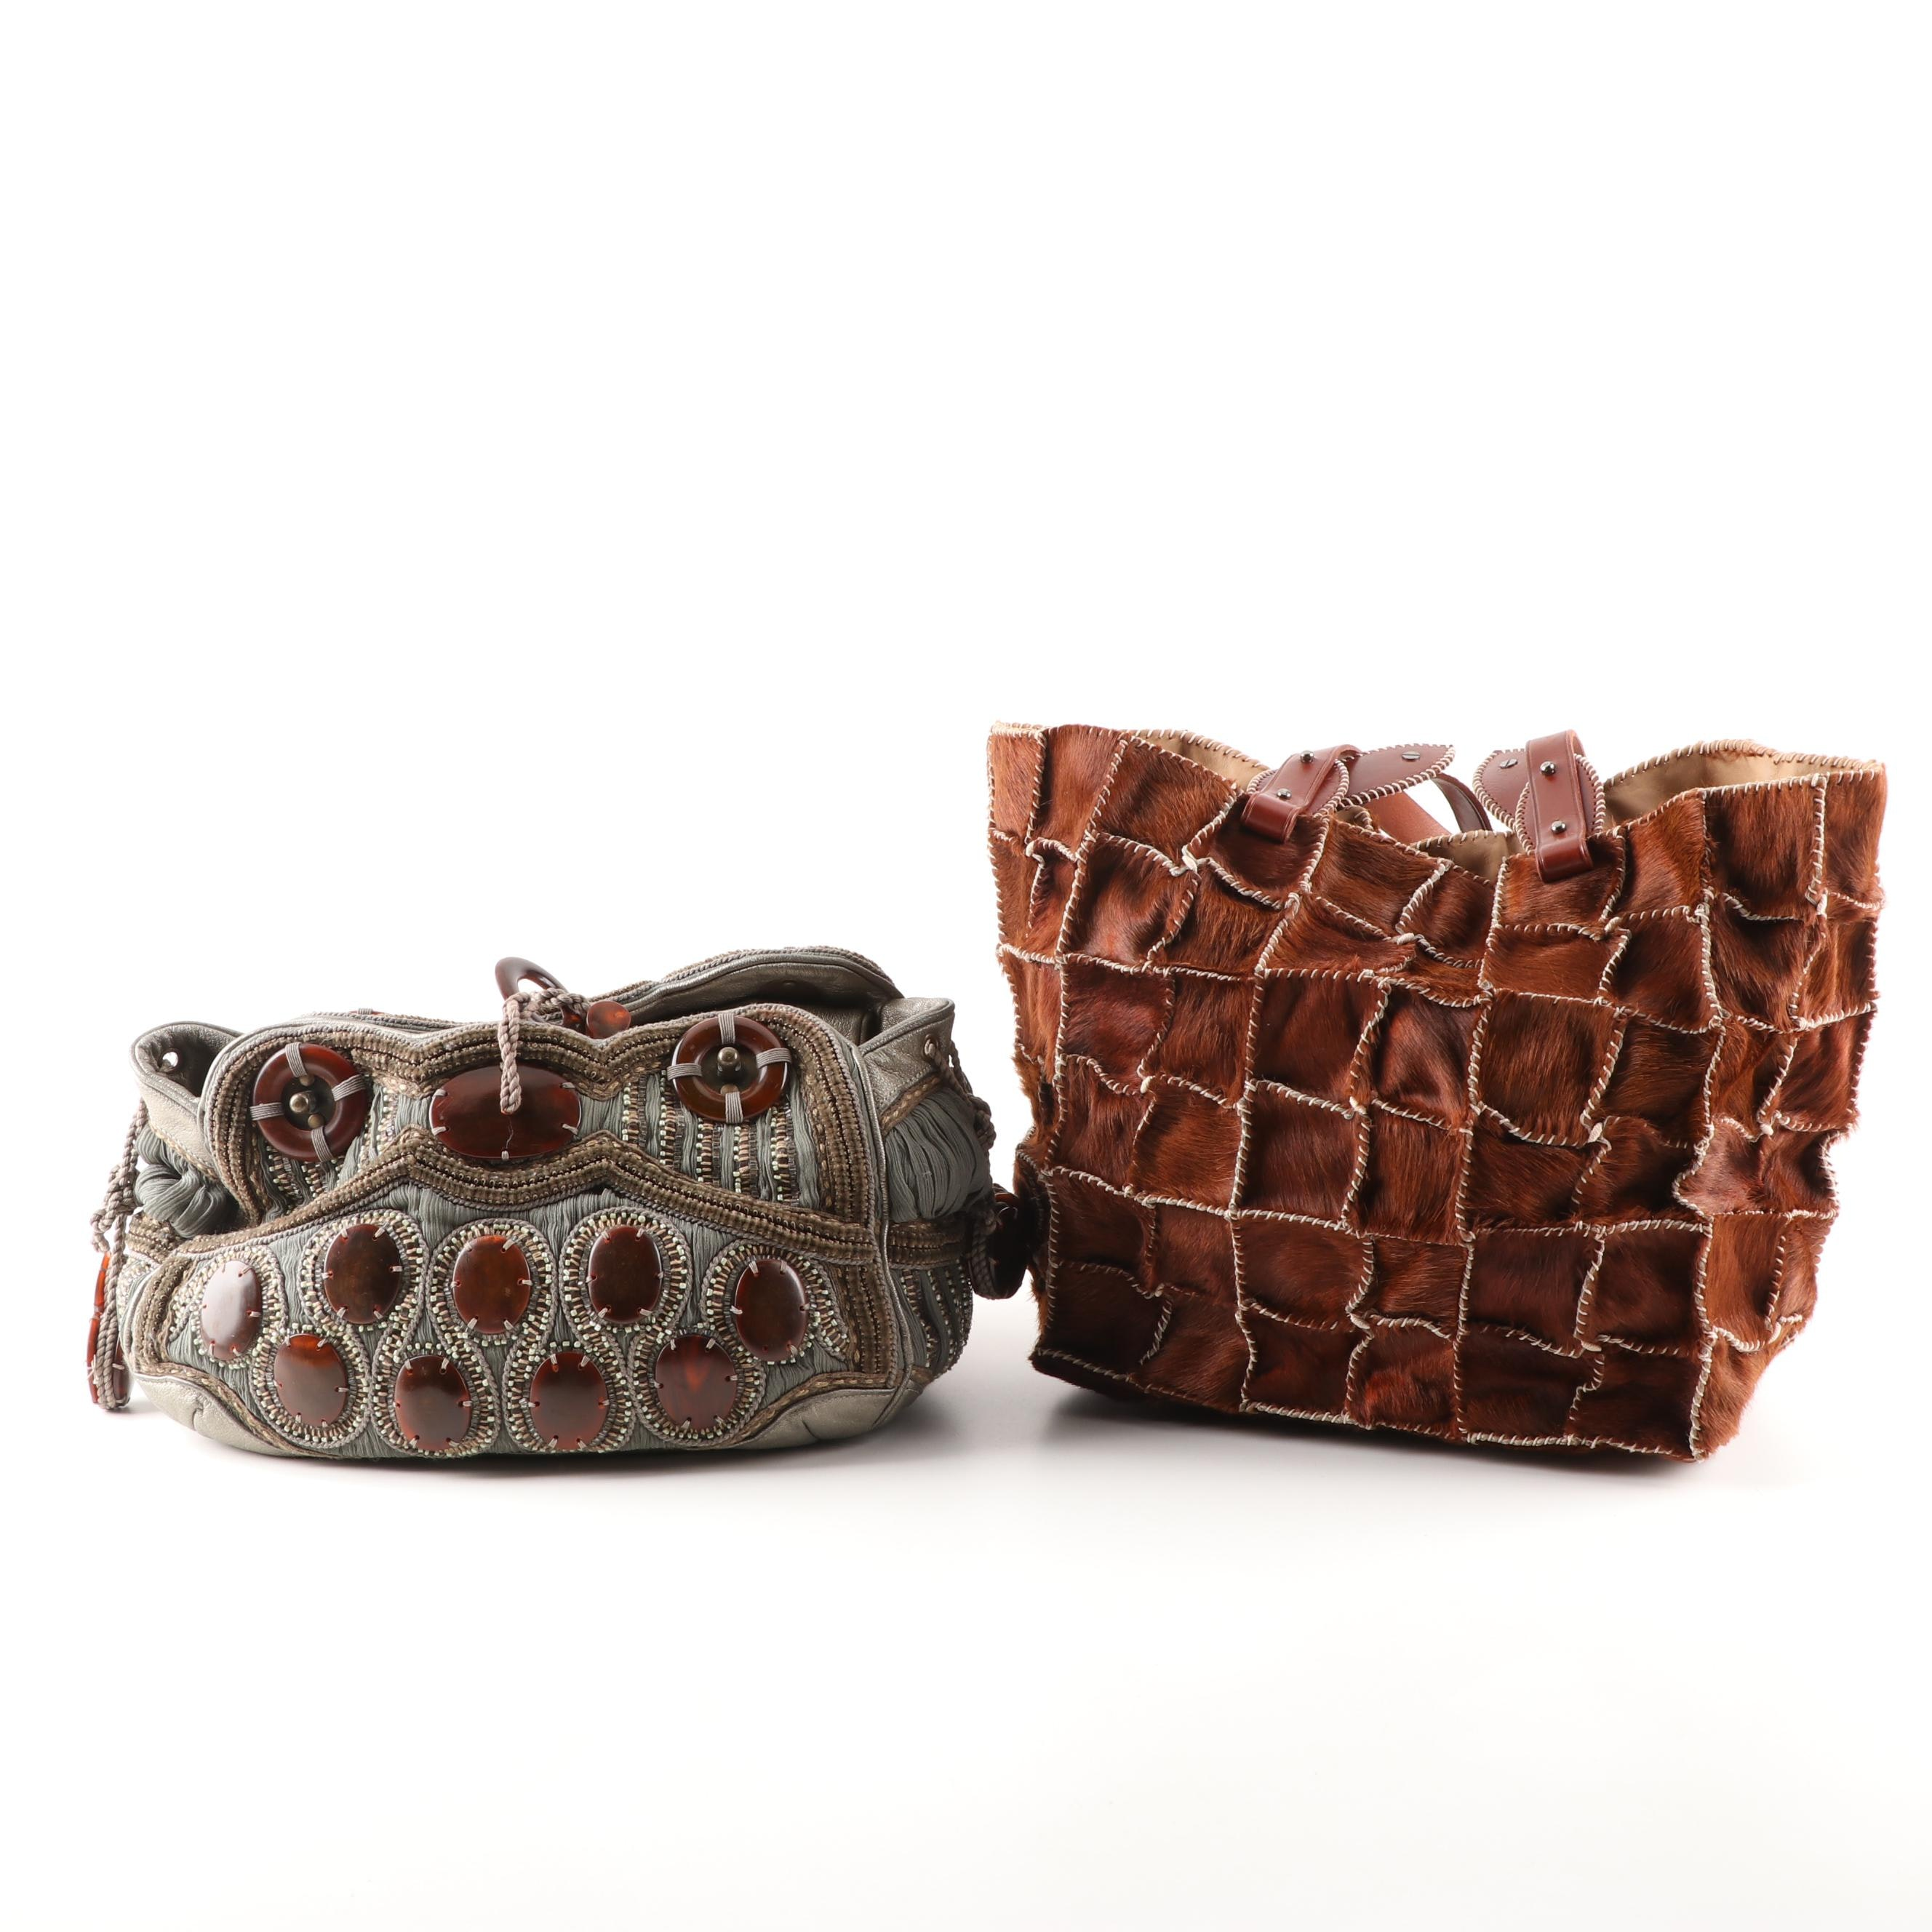 Jamin Puech Embellished Clutch and Brown Calf Hair Tote Bag